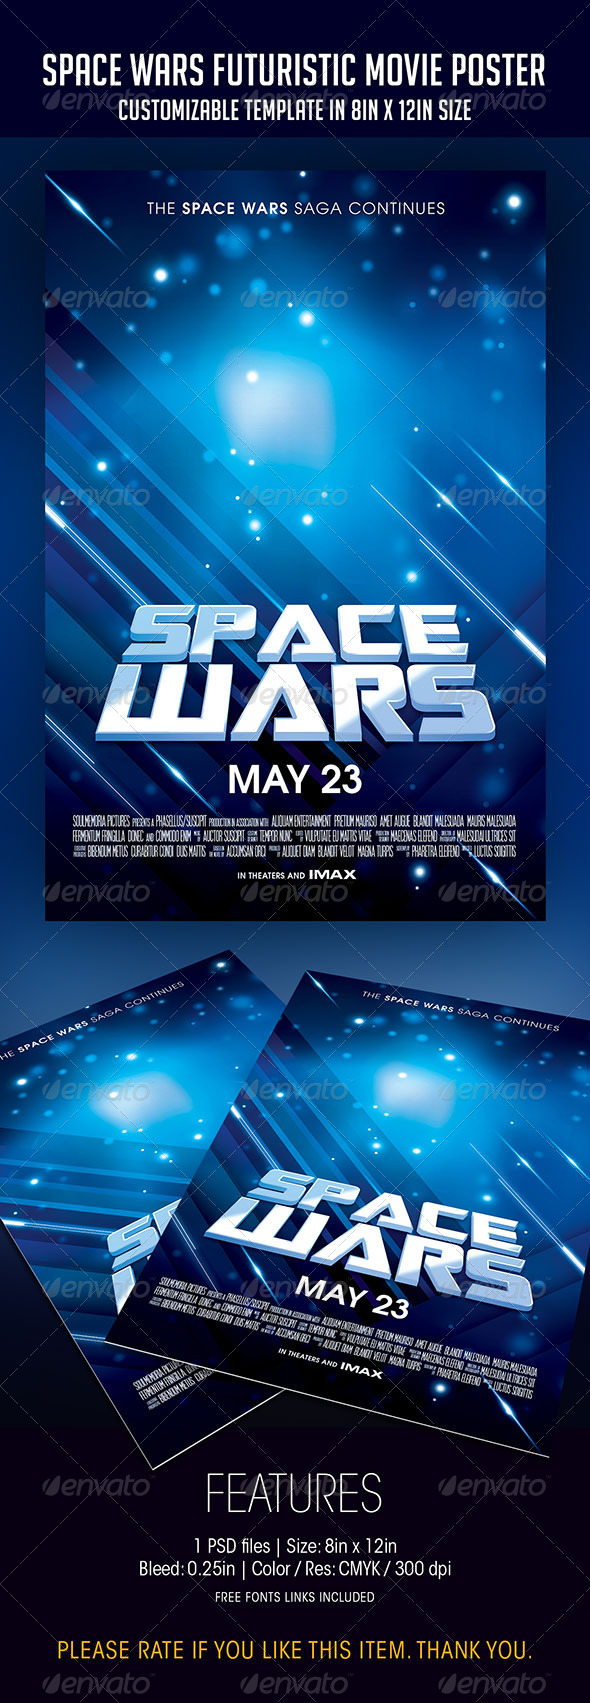 movie poster credits template free - space wars futuristic movie poster graphicriver